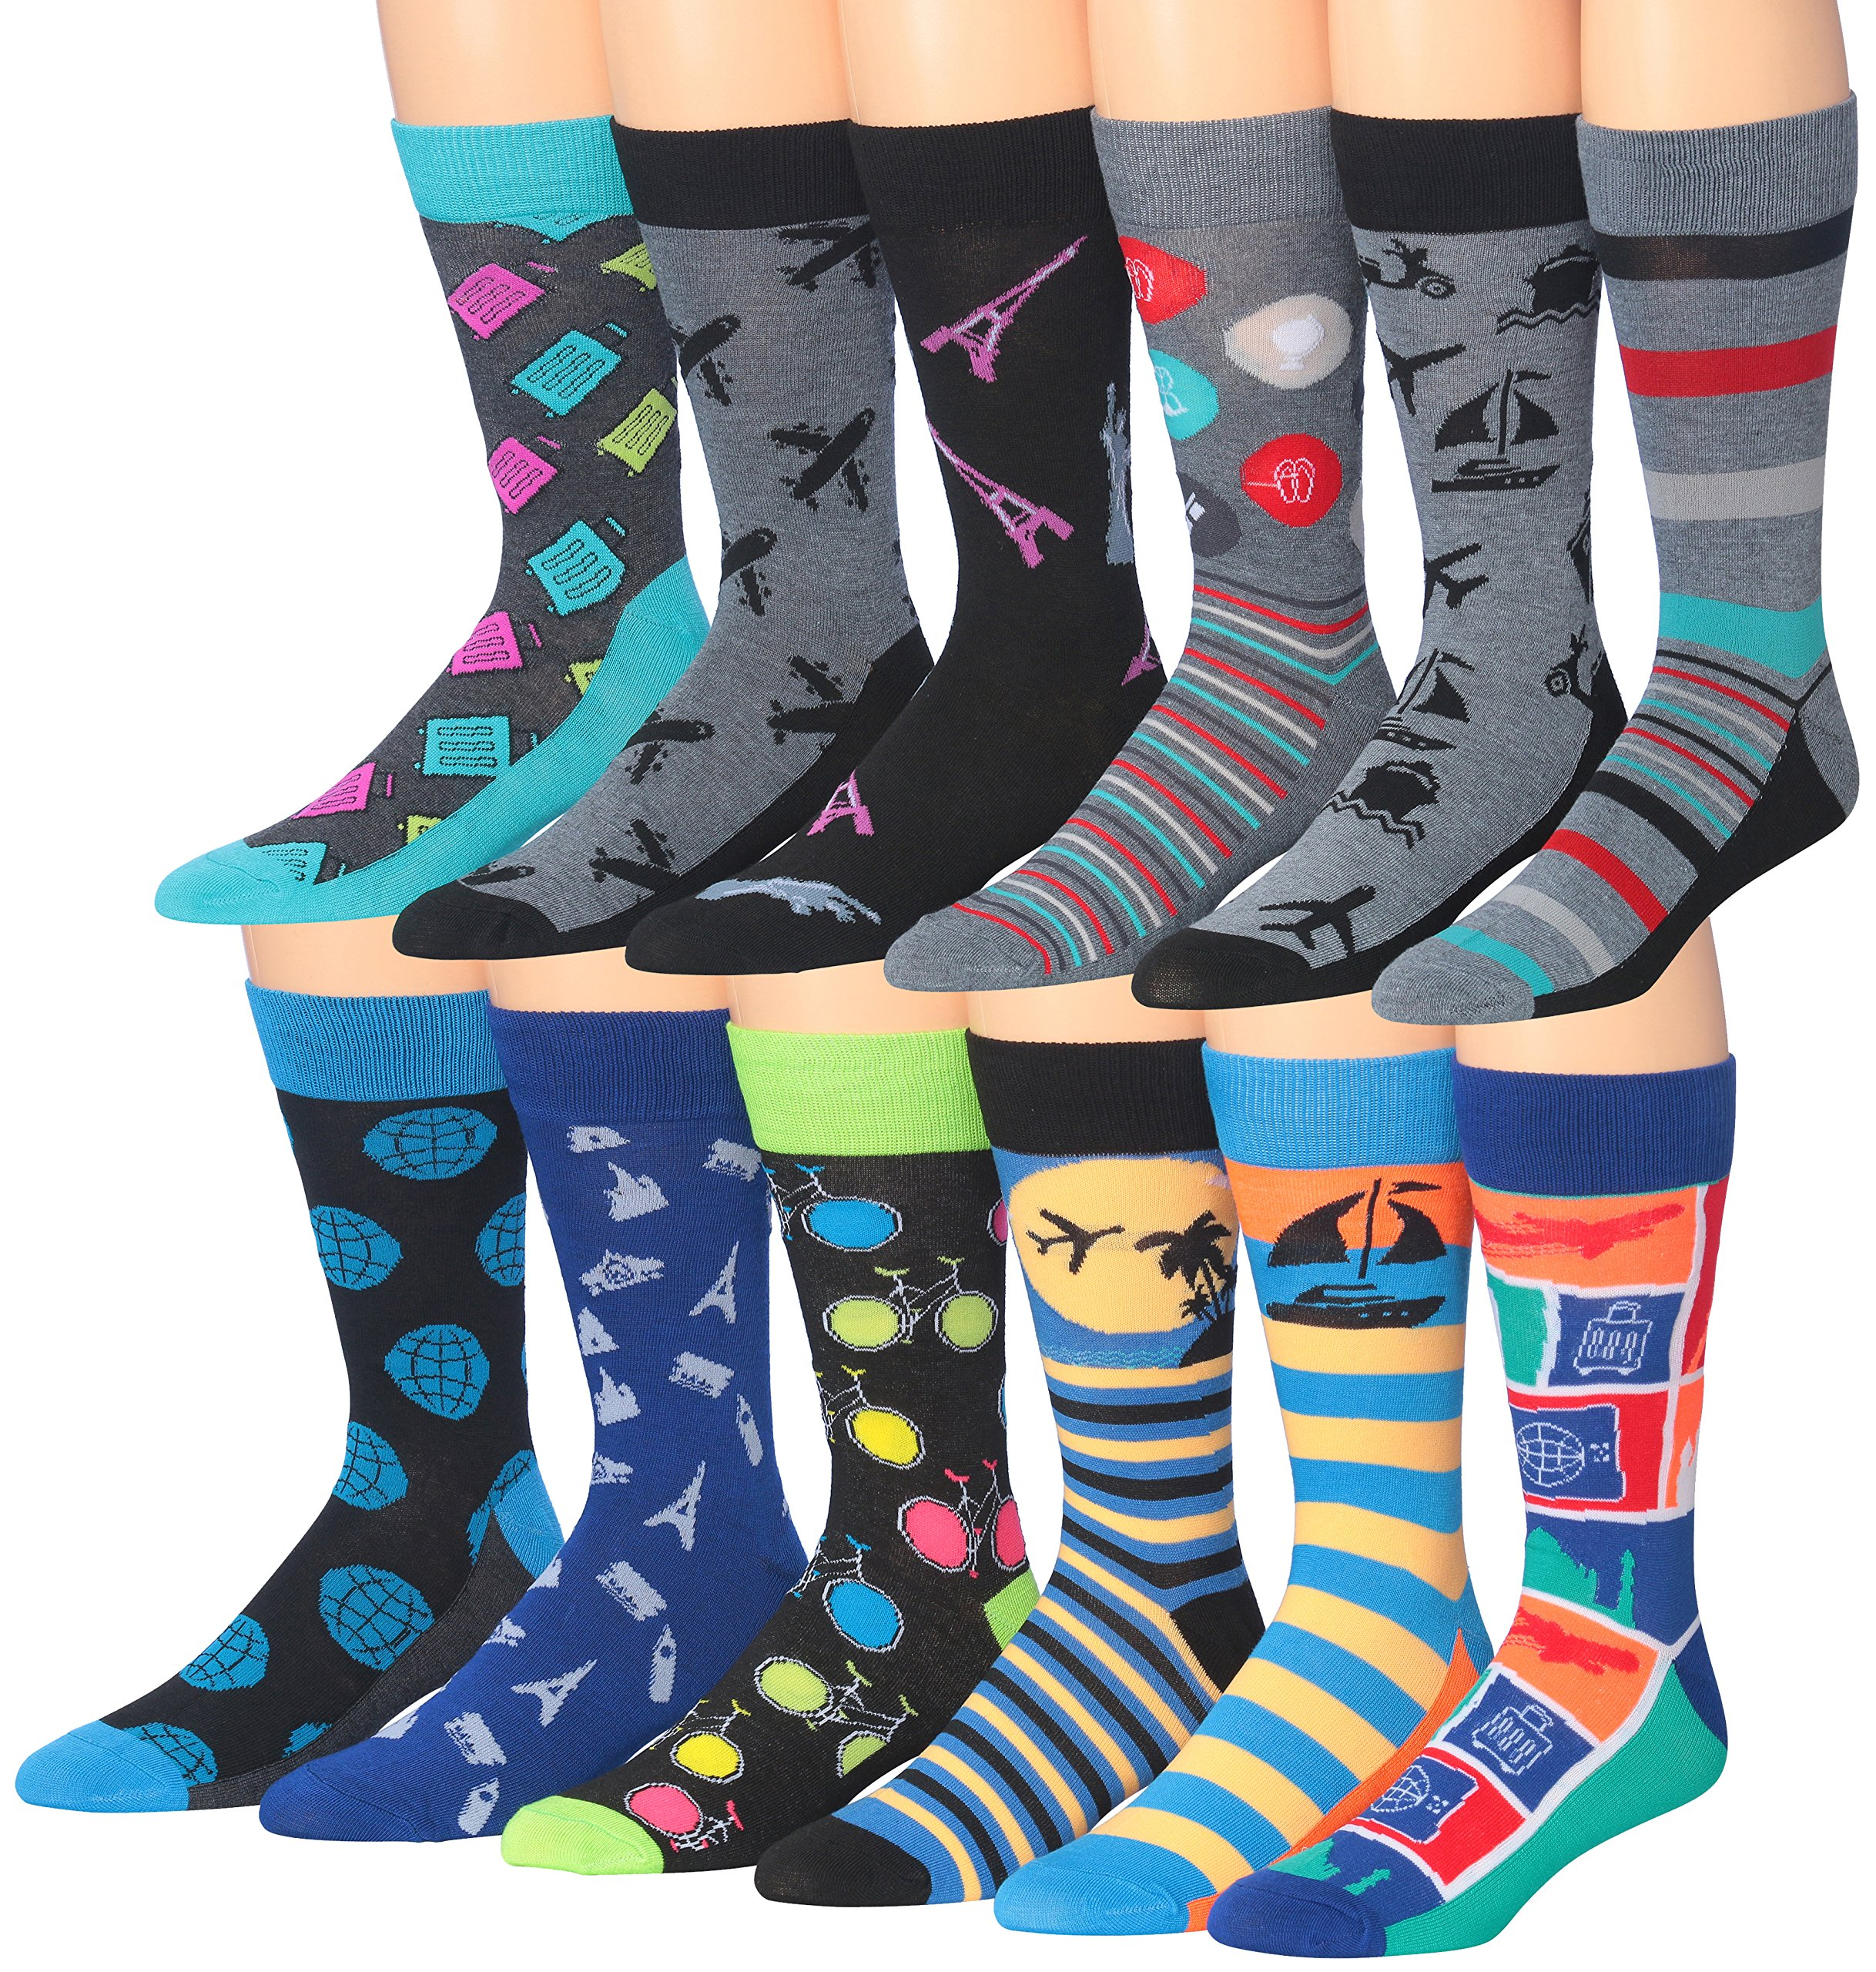 James Fiallo Men's 12 Pairs Cotton Funky Crazy Crew Winter Dress Socks, sock size, M190…